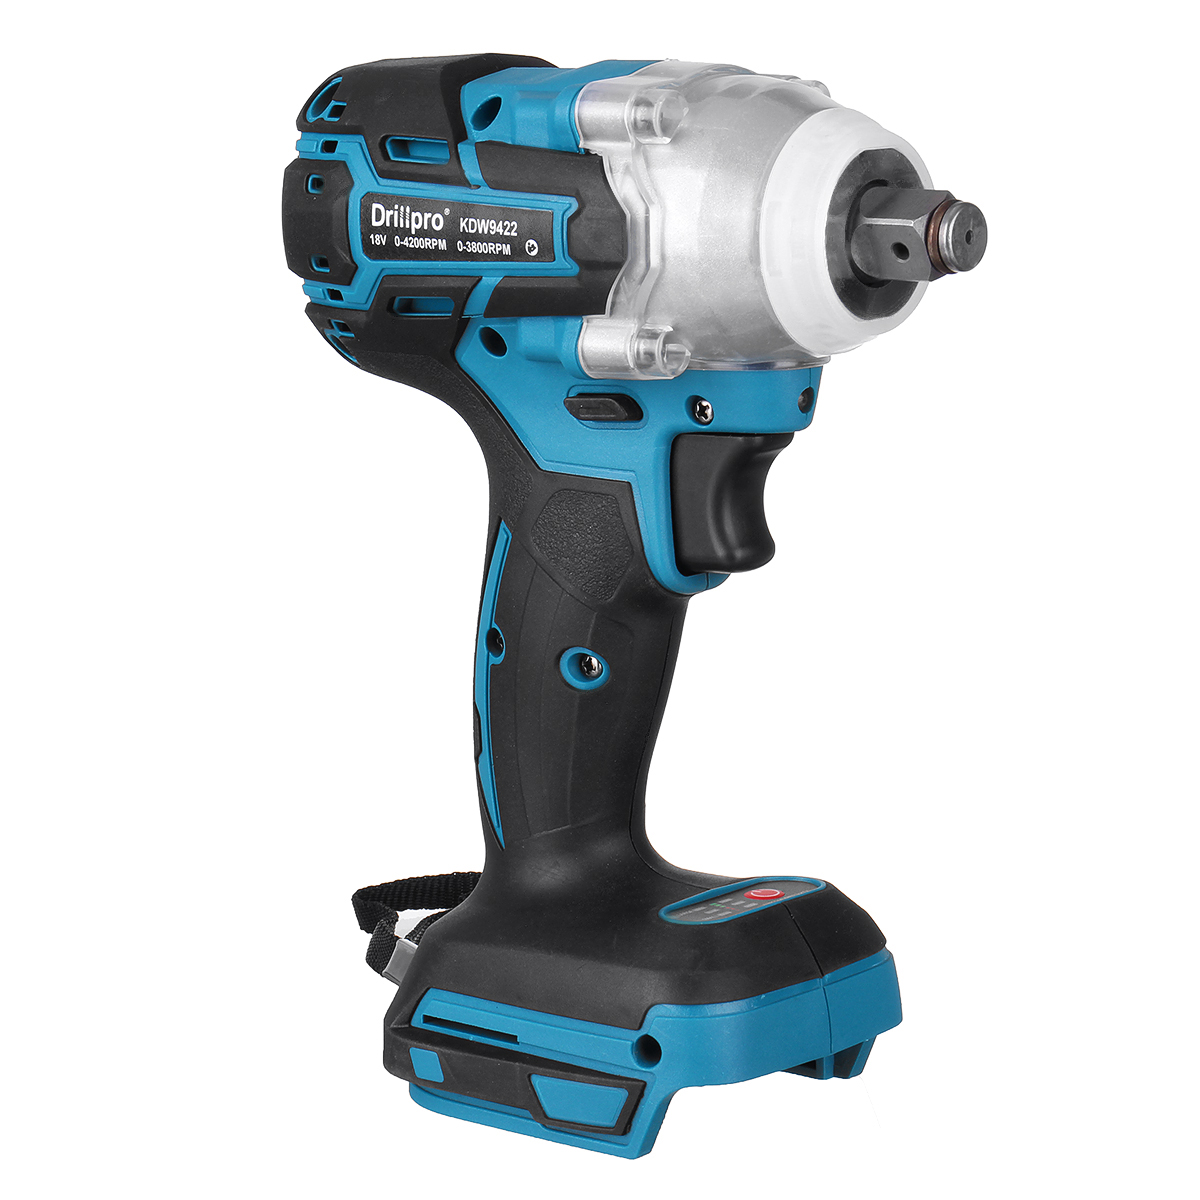 Tools : 18V 280N m Cordless Impact Wrench Driver Brushless Motor 1 2inch Square Electric Wrench With LED Light Adapted To Makita DTW285Z